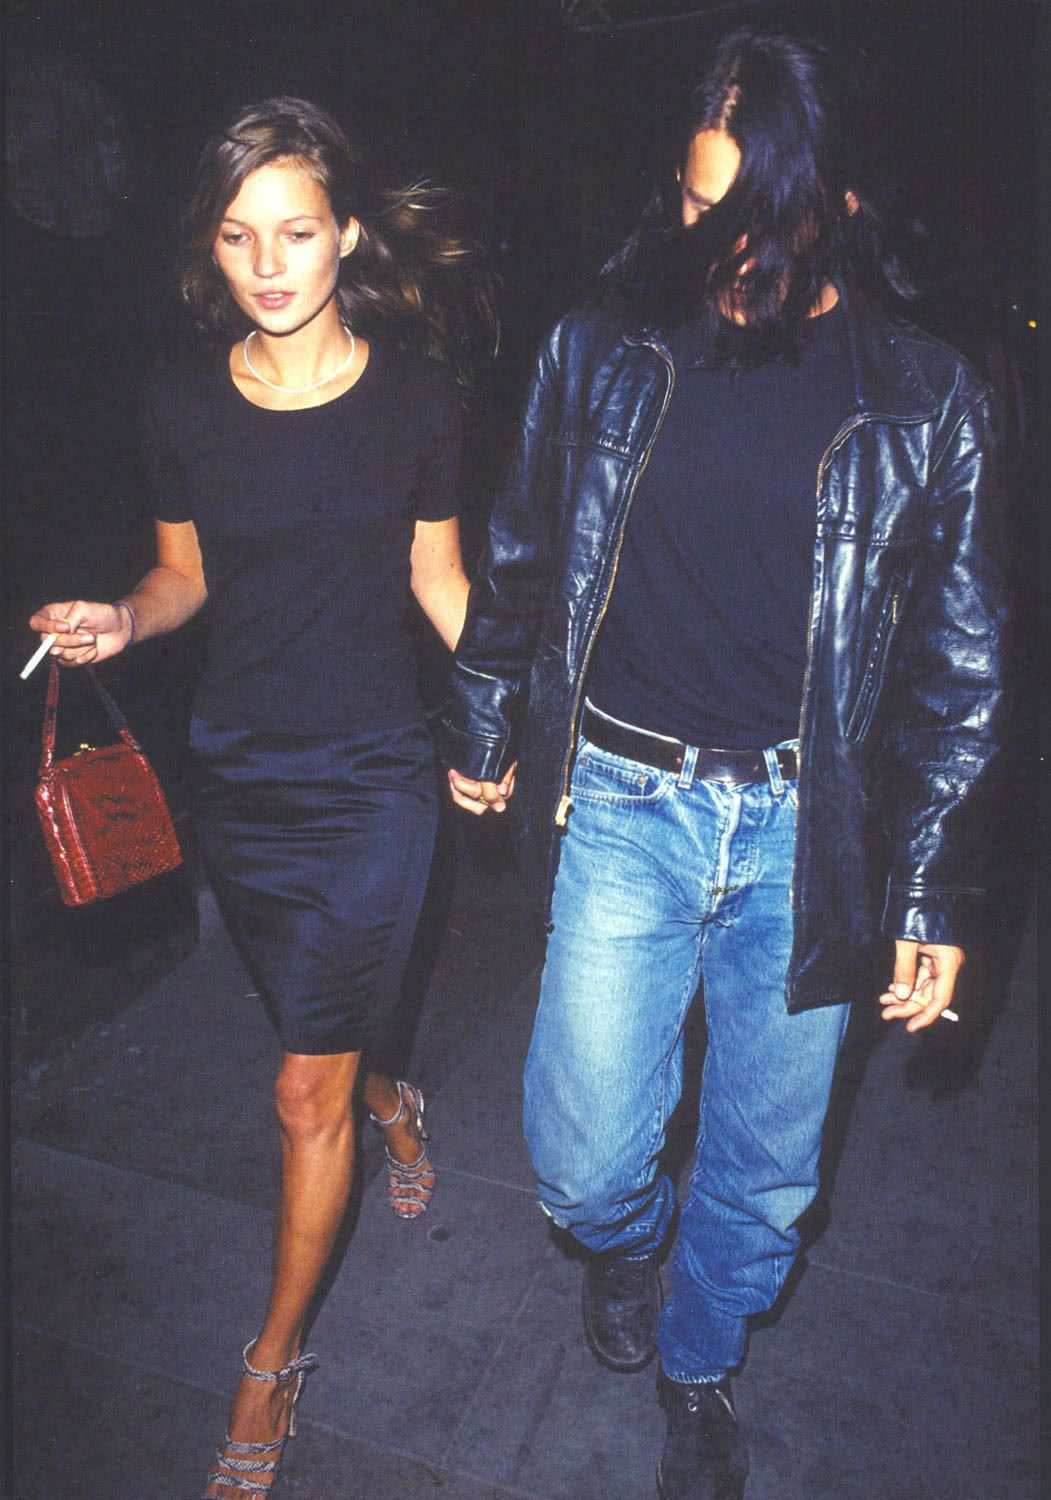 Kate & Johnny!!! A Tiffany diamond necklace paired with a simple black tee!!!! Perfection!!!!